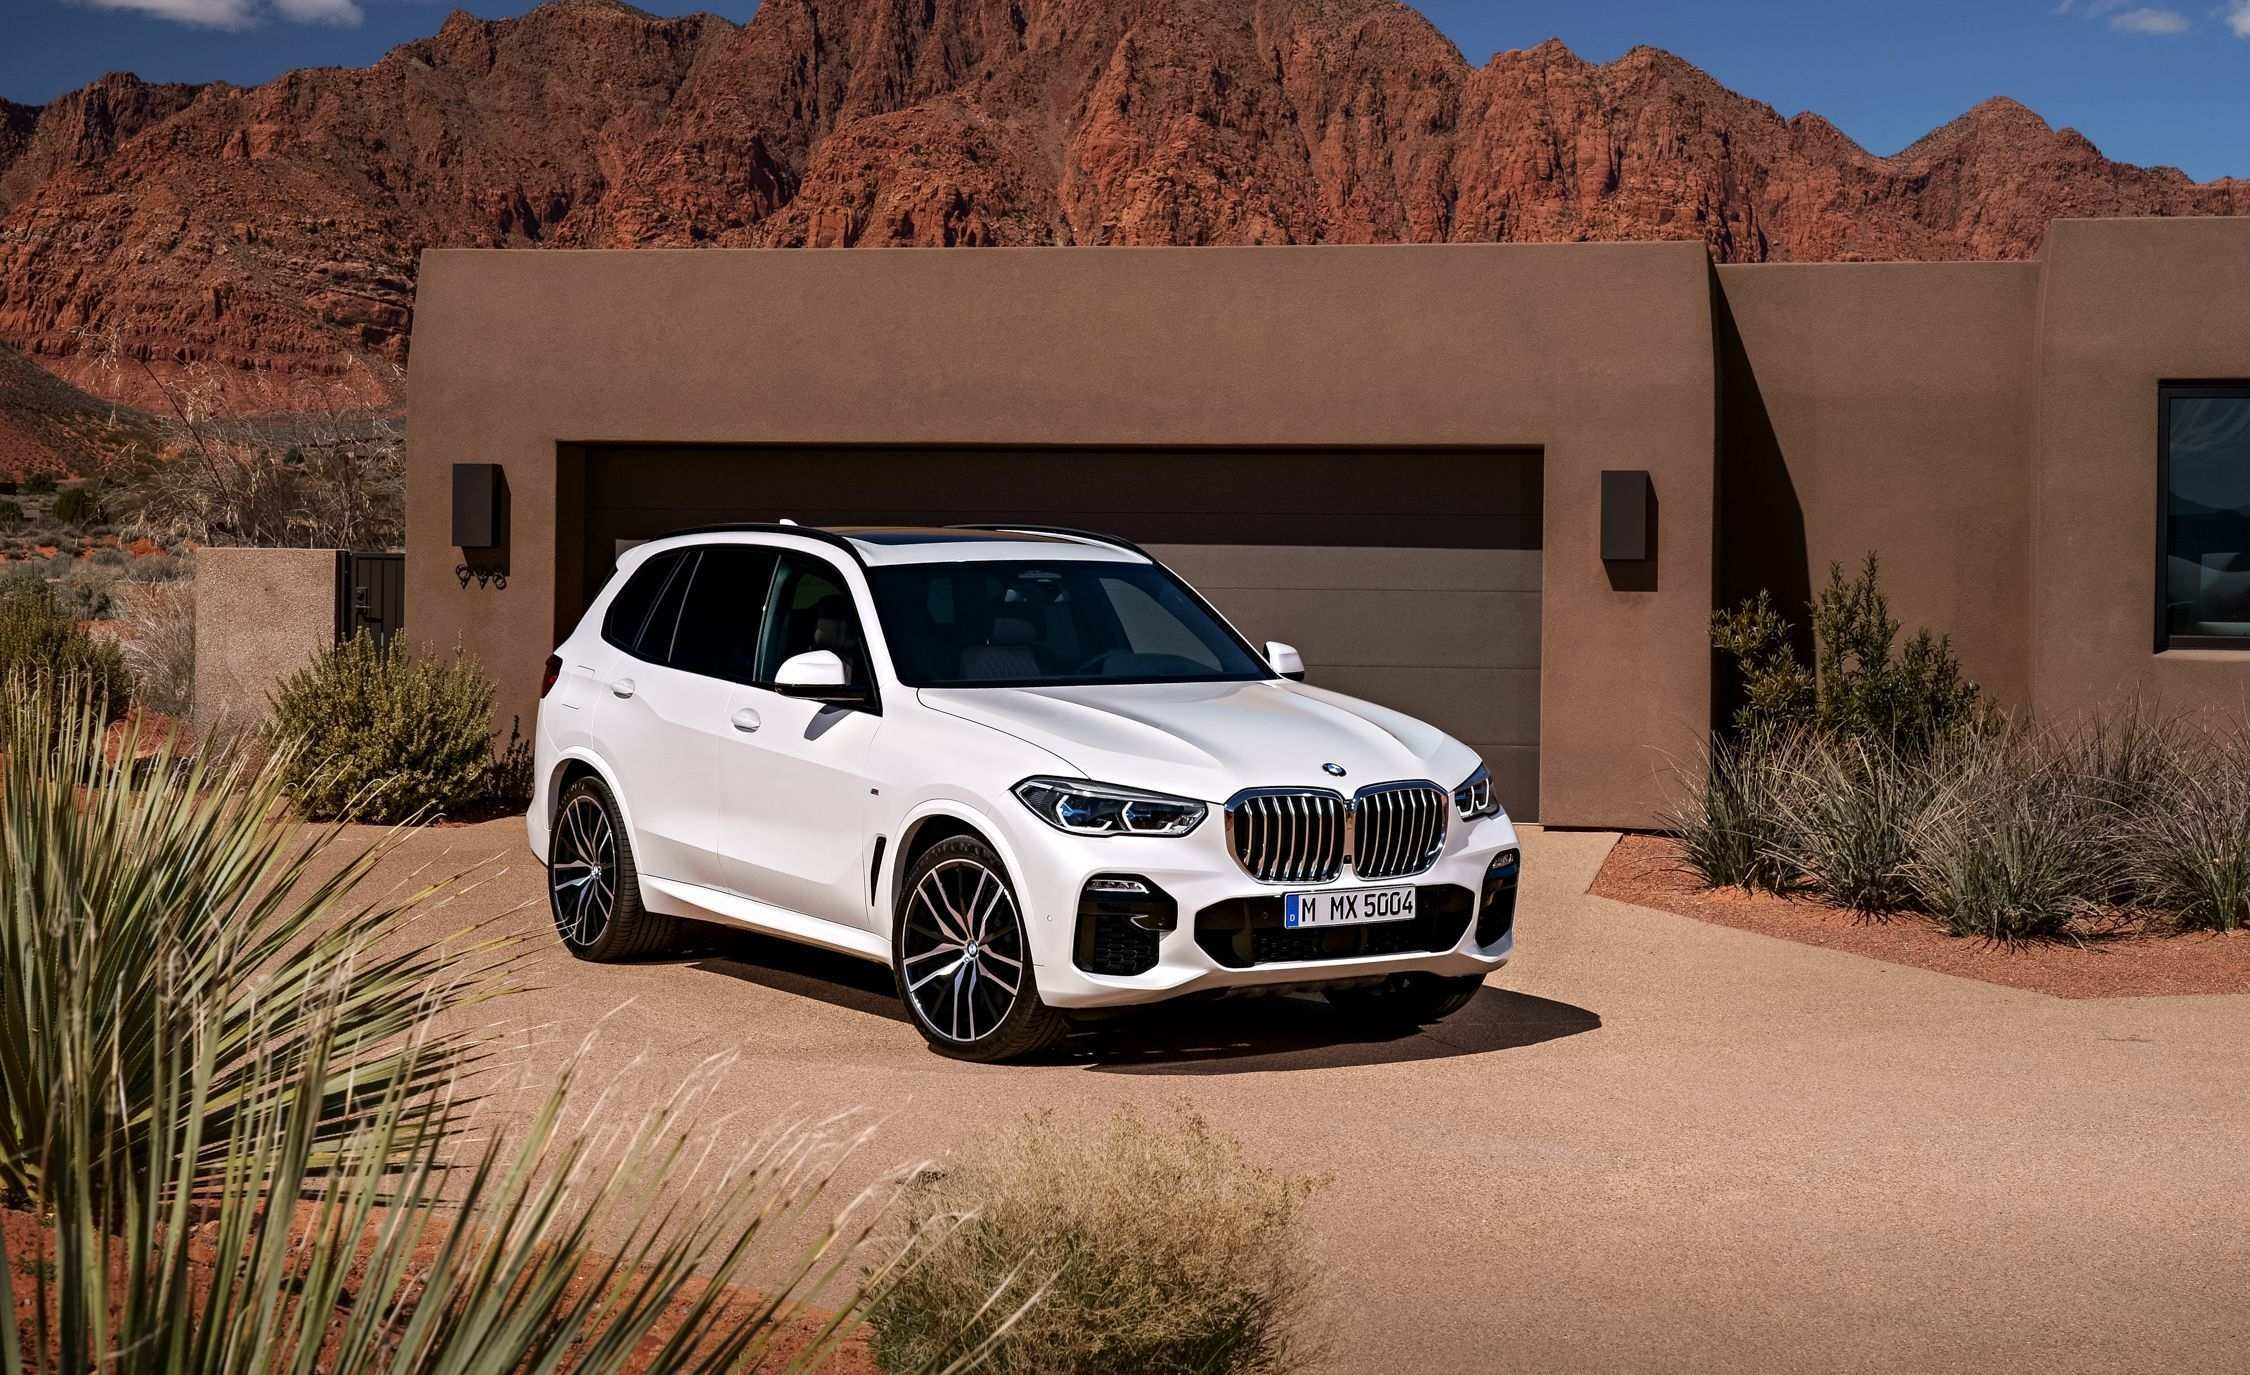 51 Concept of Bmw 2019 X5 Release Date Performance Exterior for Bmw 2019 X5 Release Date Performance